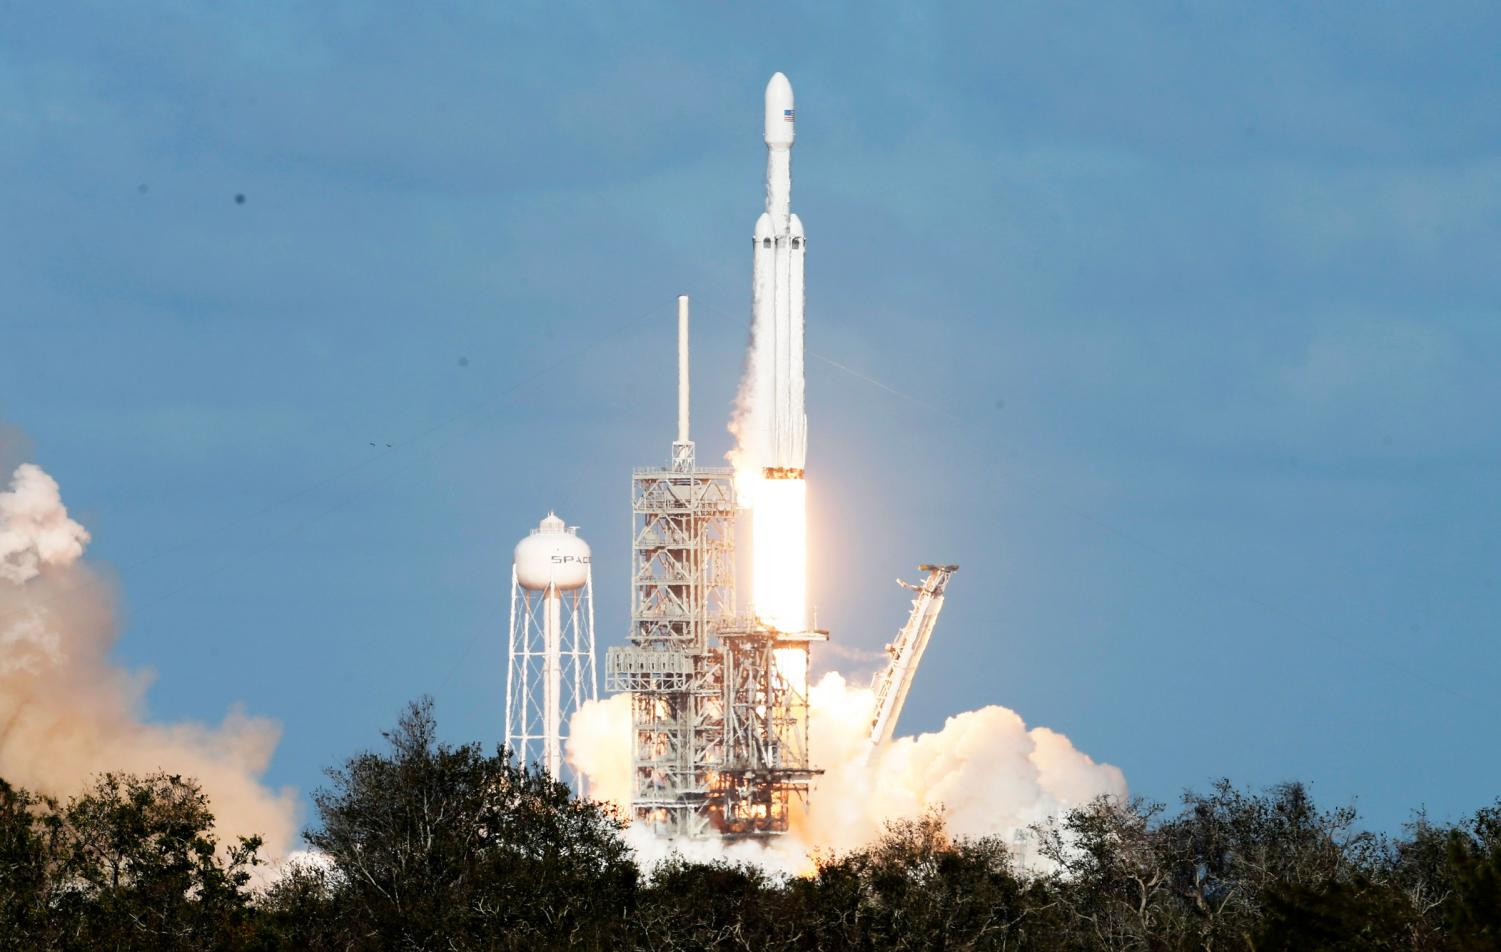 The Falcon Heavy launches from Cape Canaveral, Florida on Tuesday, February 6th. The rocket was carrying a Tesla Roadster and was being tested as the most powerful rocket in the world.